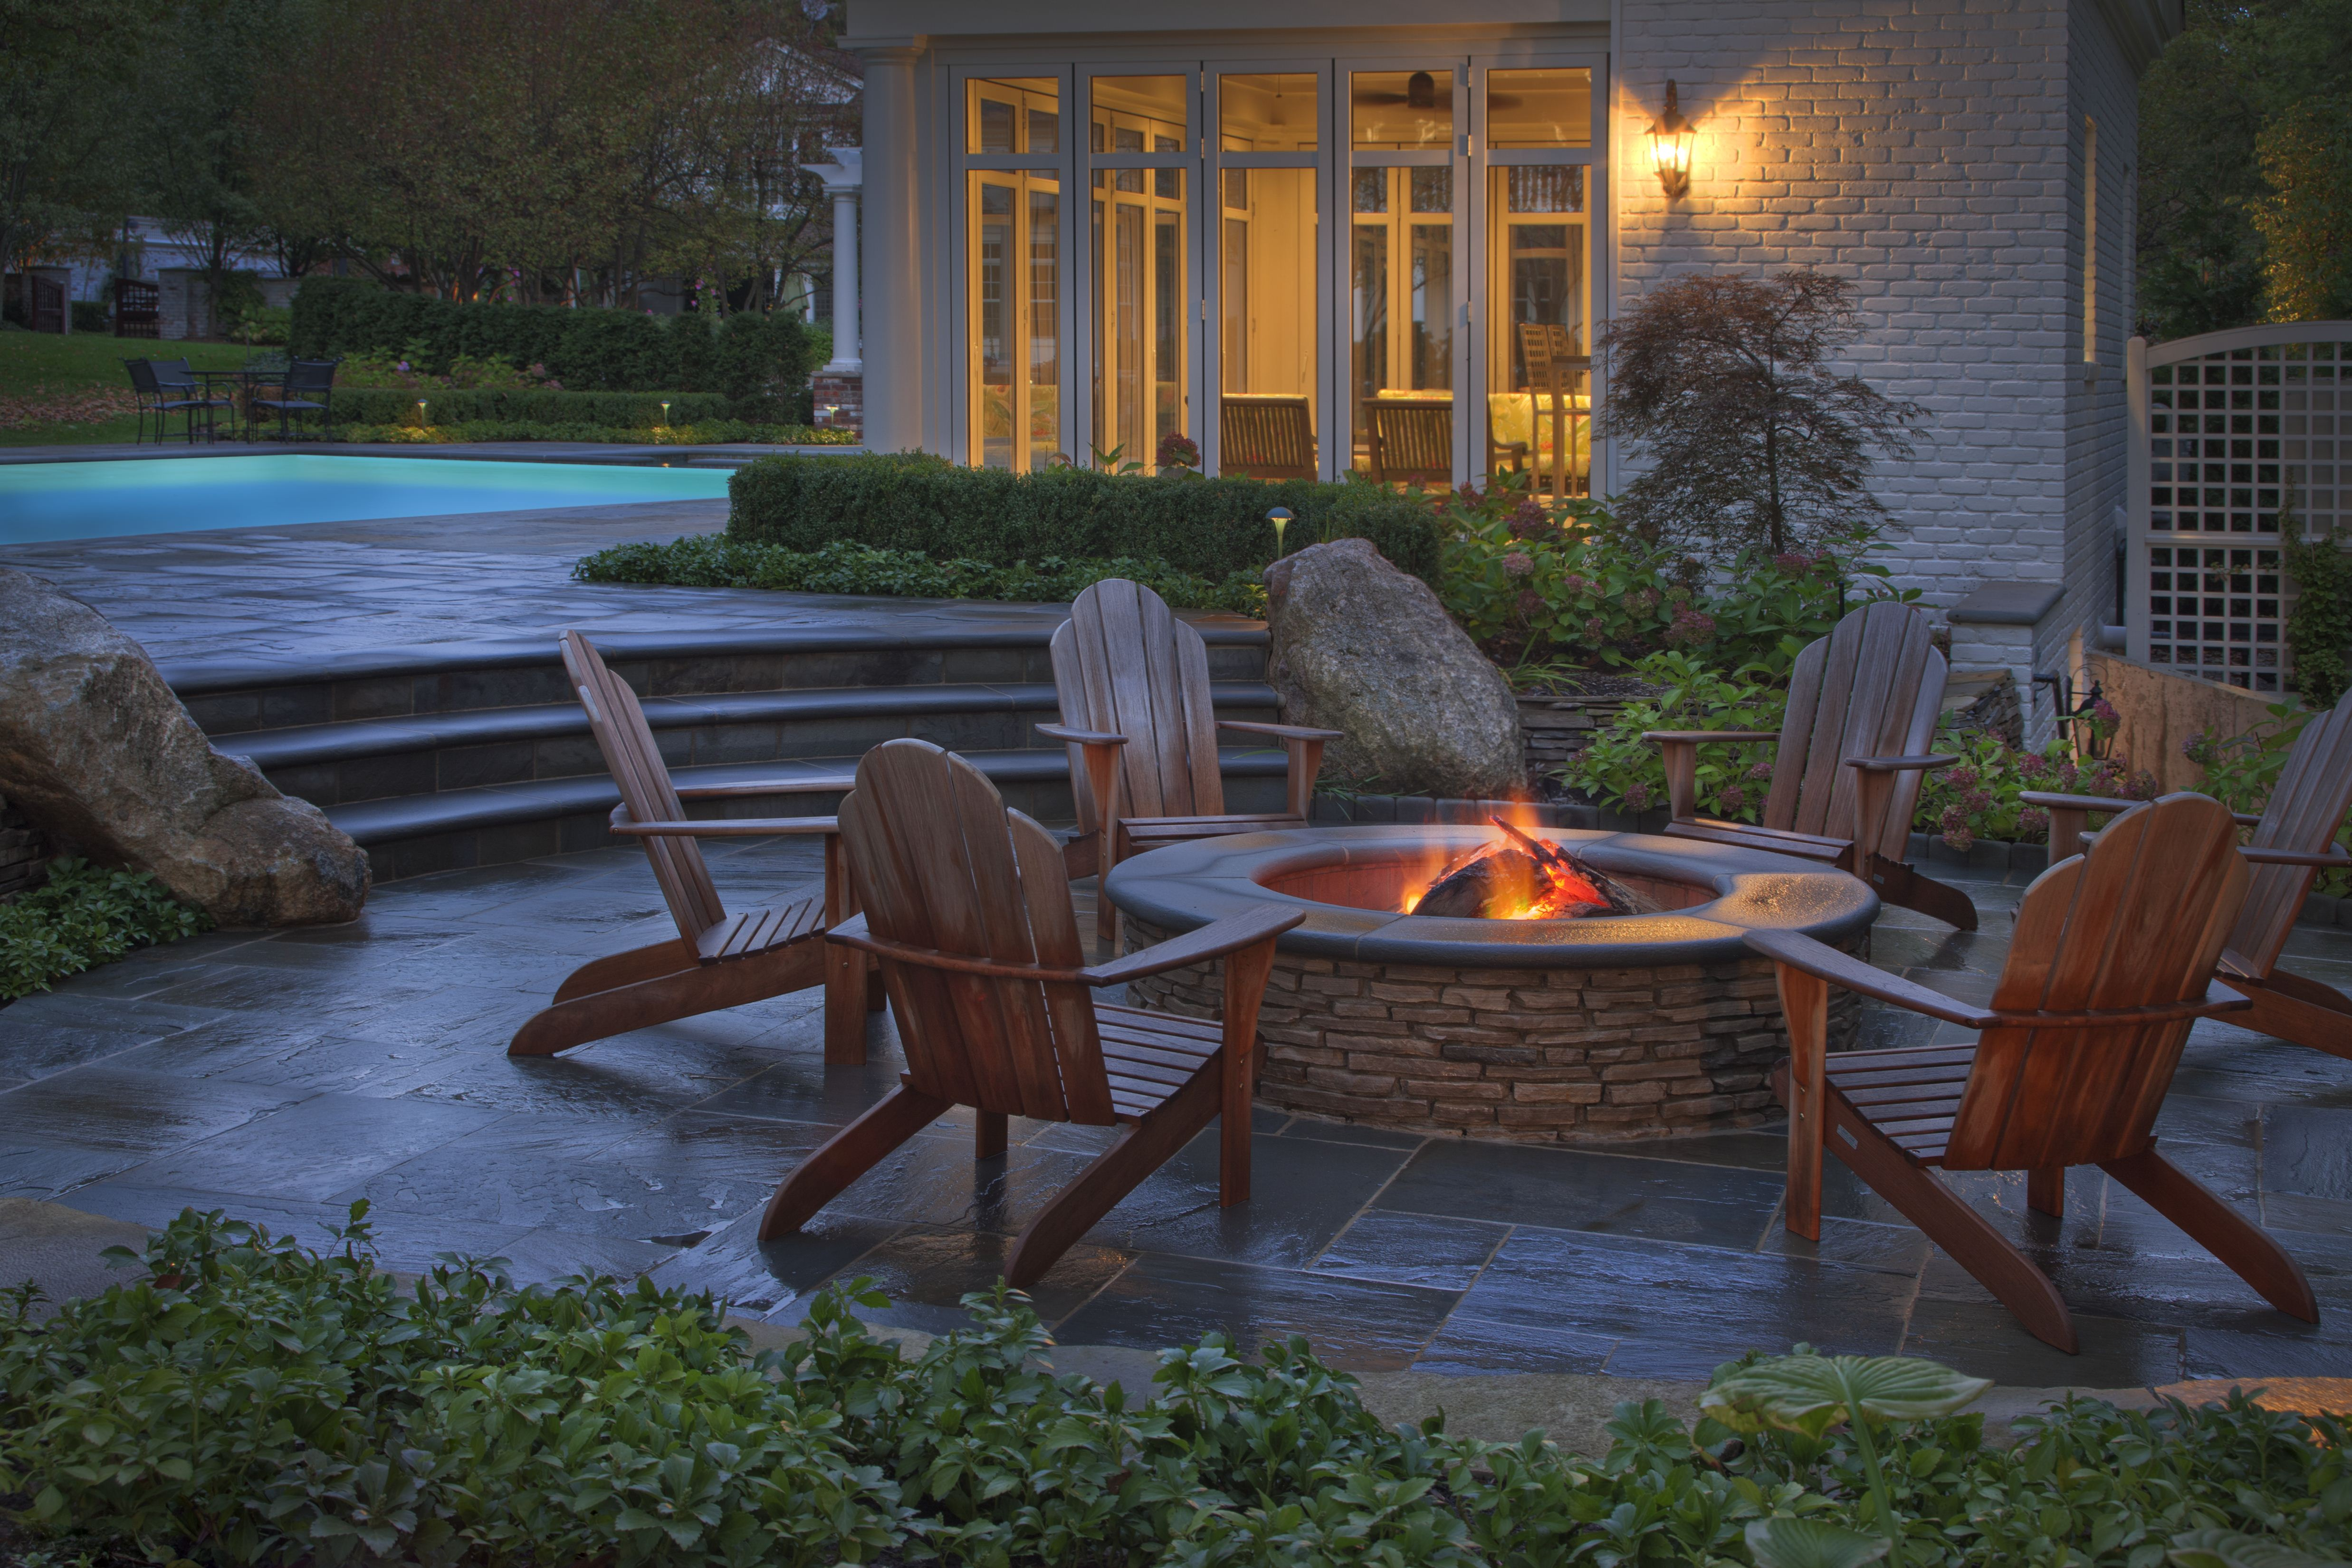 homeowner interior brick patio designs with fire pit | hampedia ...